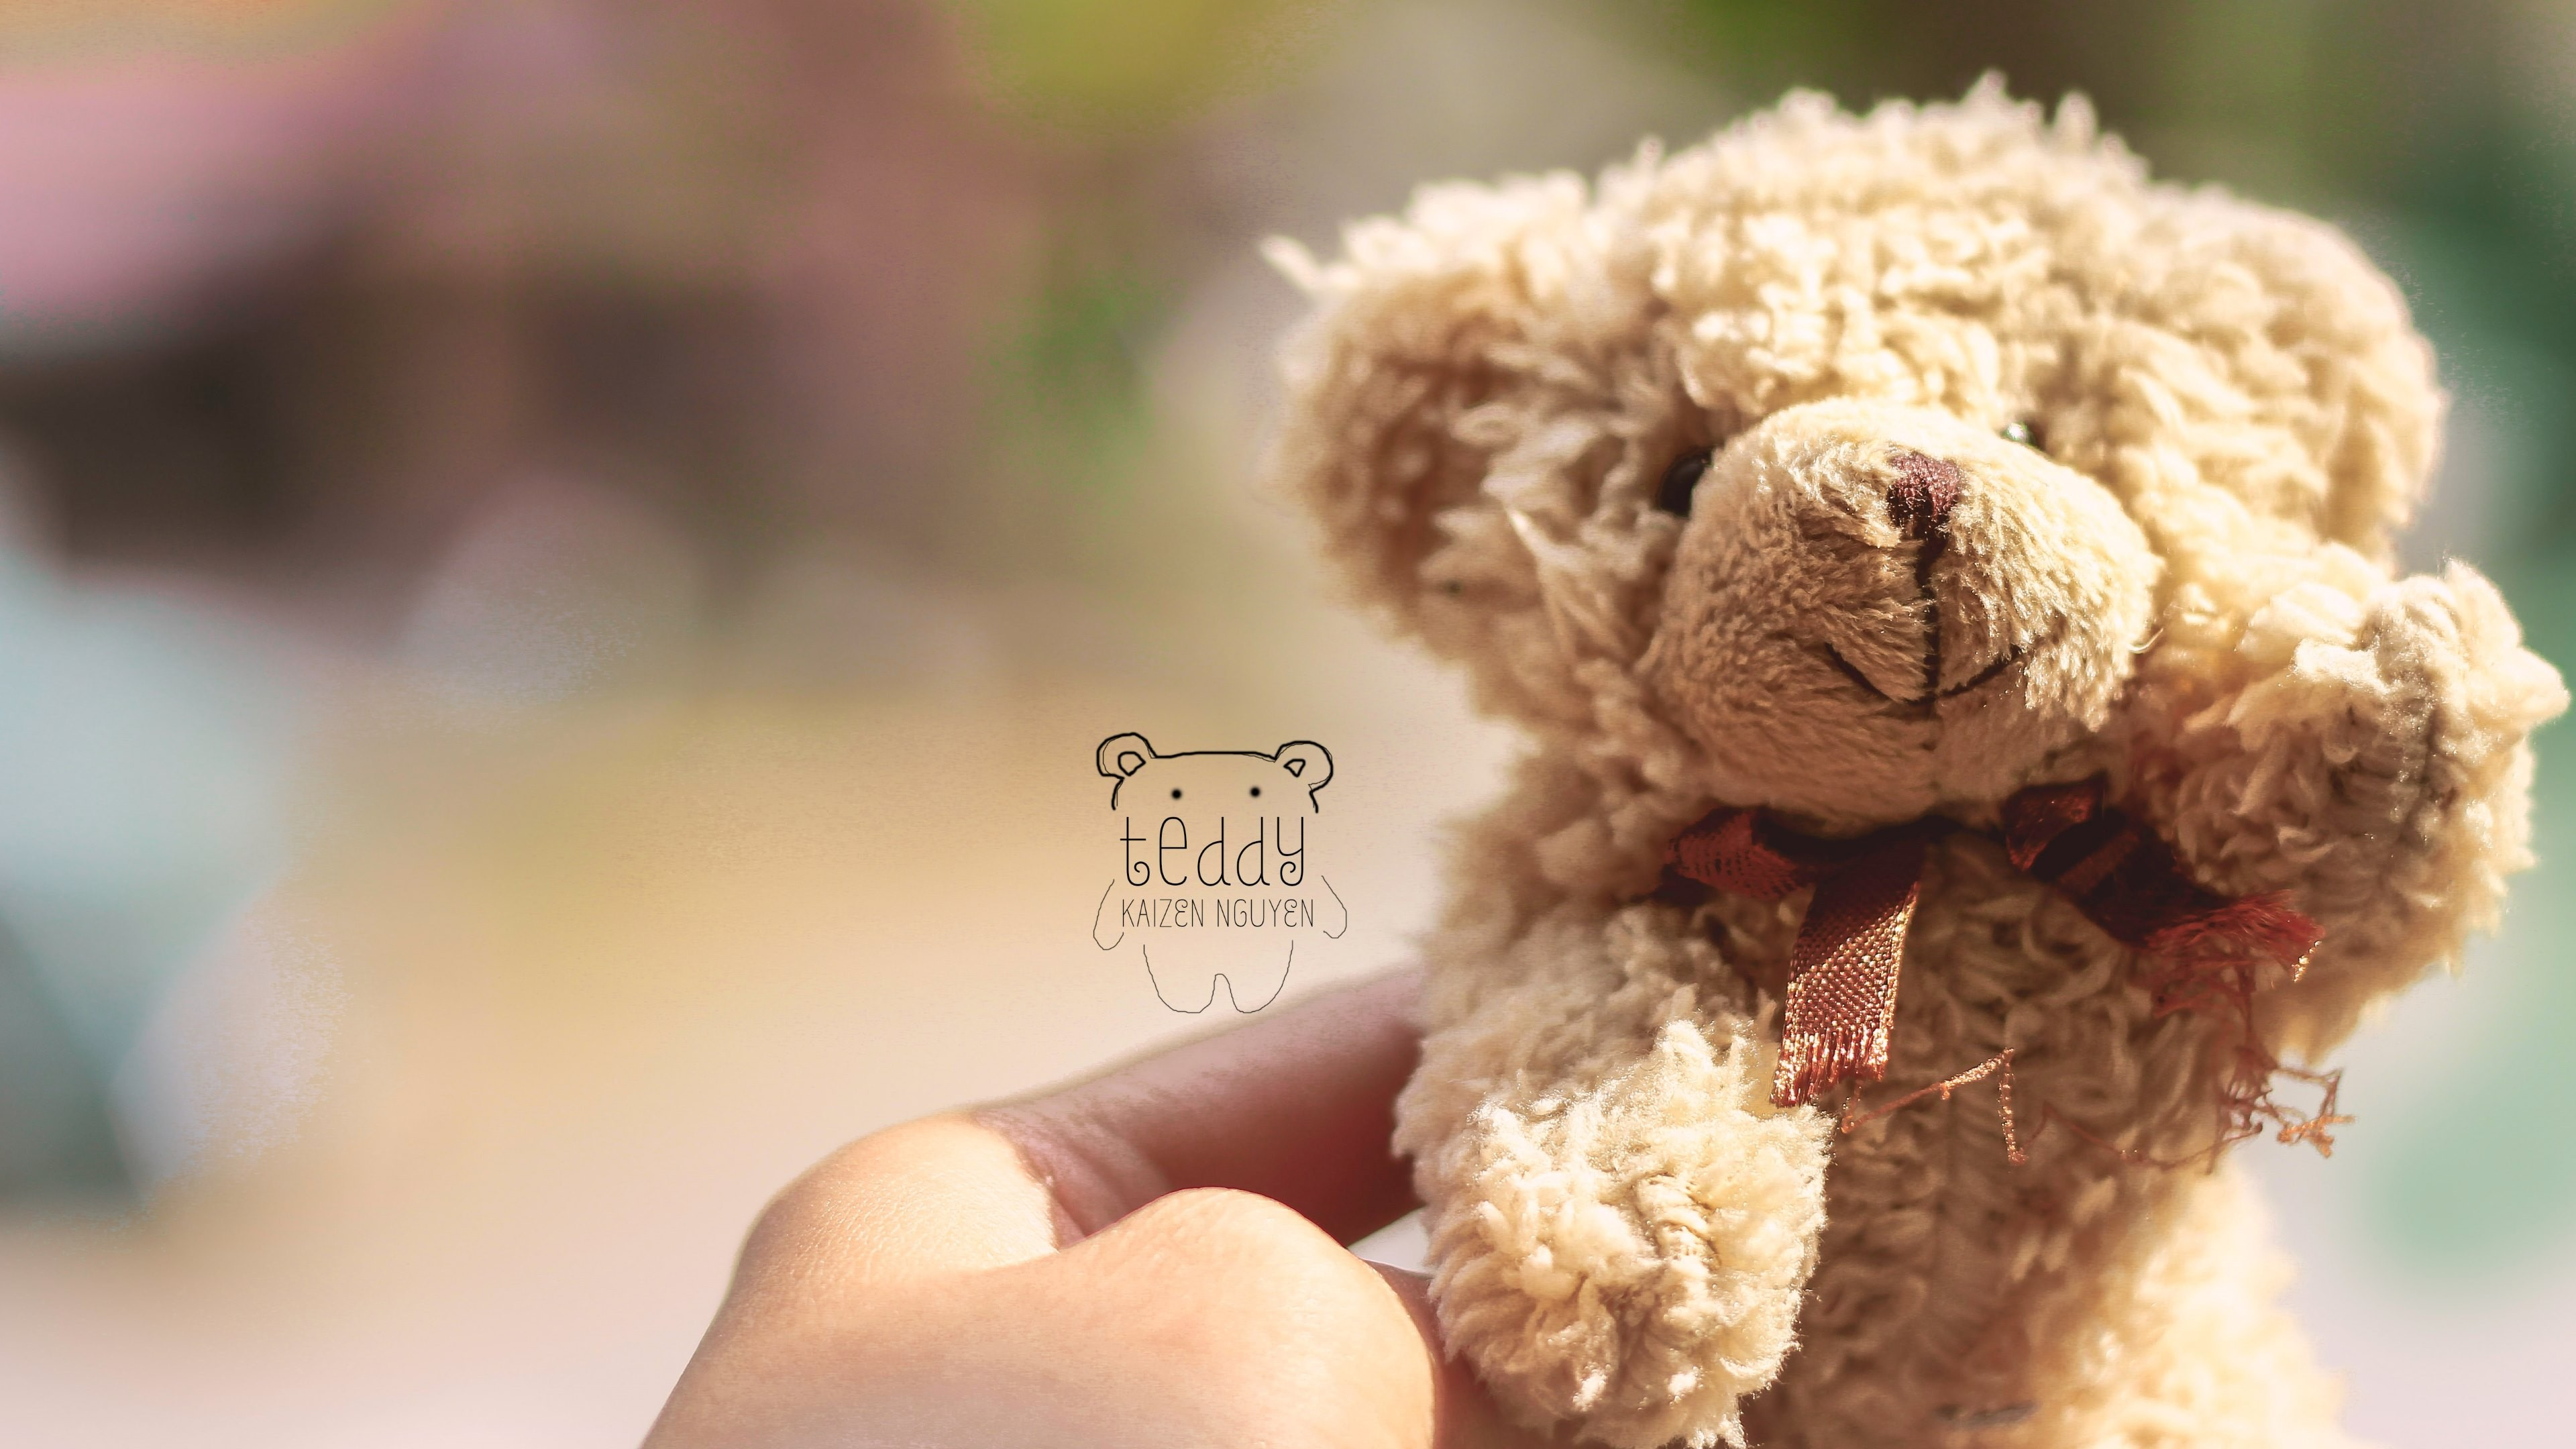 Bunny Cute Pink Teddy Bear Hd Wallpapers For Desktop: Teddy Bear Wallpapers For Desktop